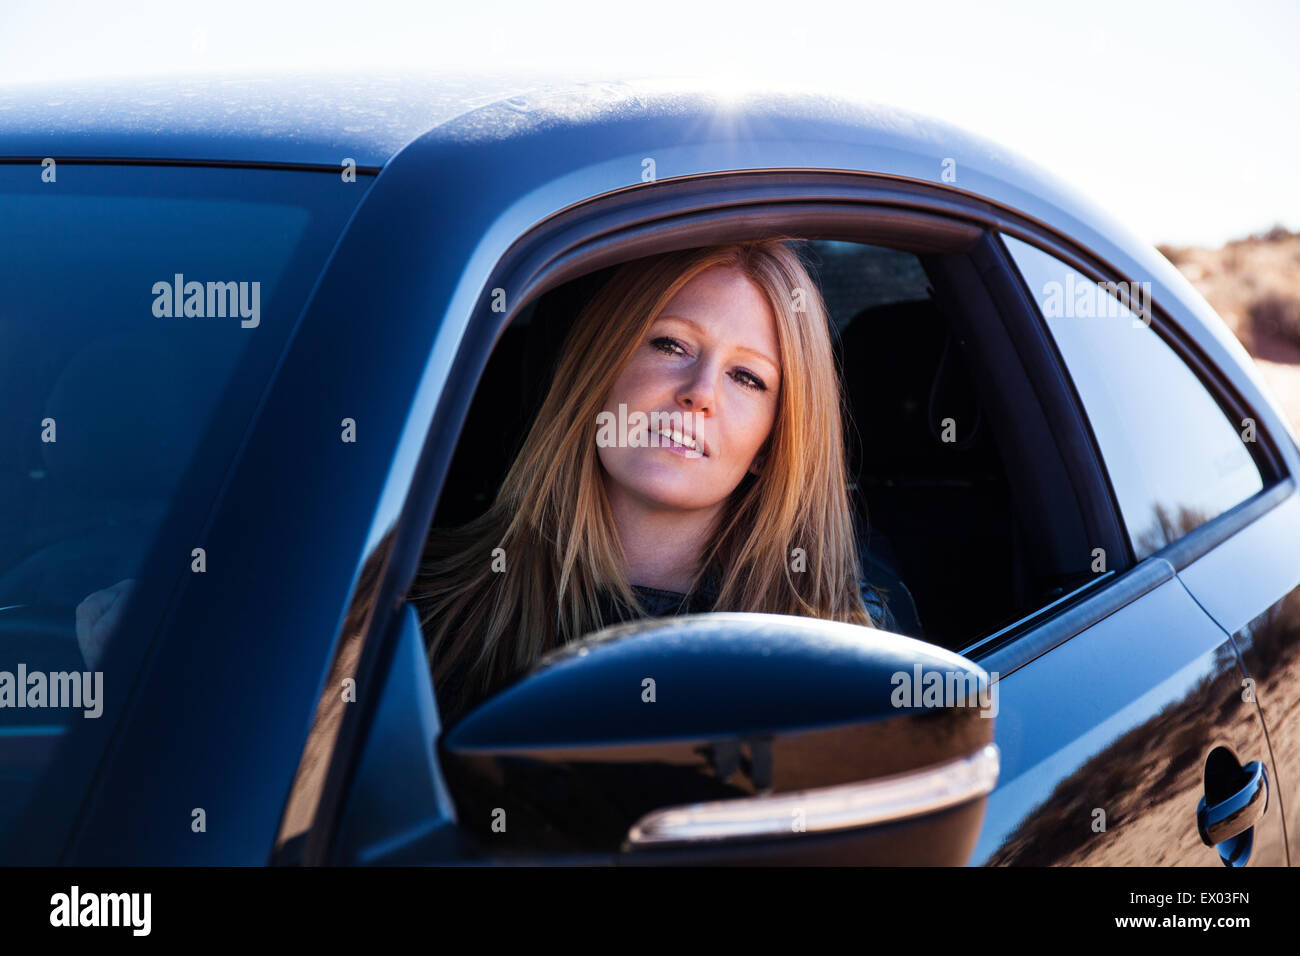 Woman sitting in car - Stock Image